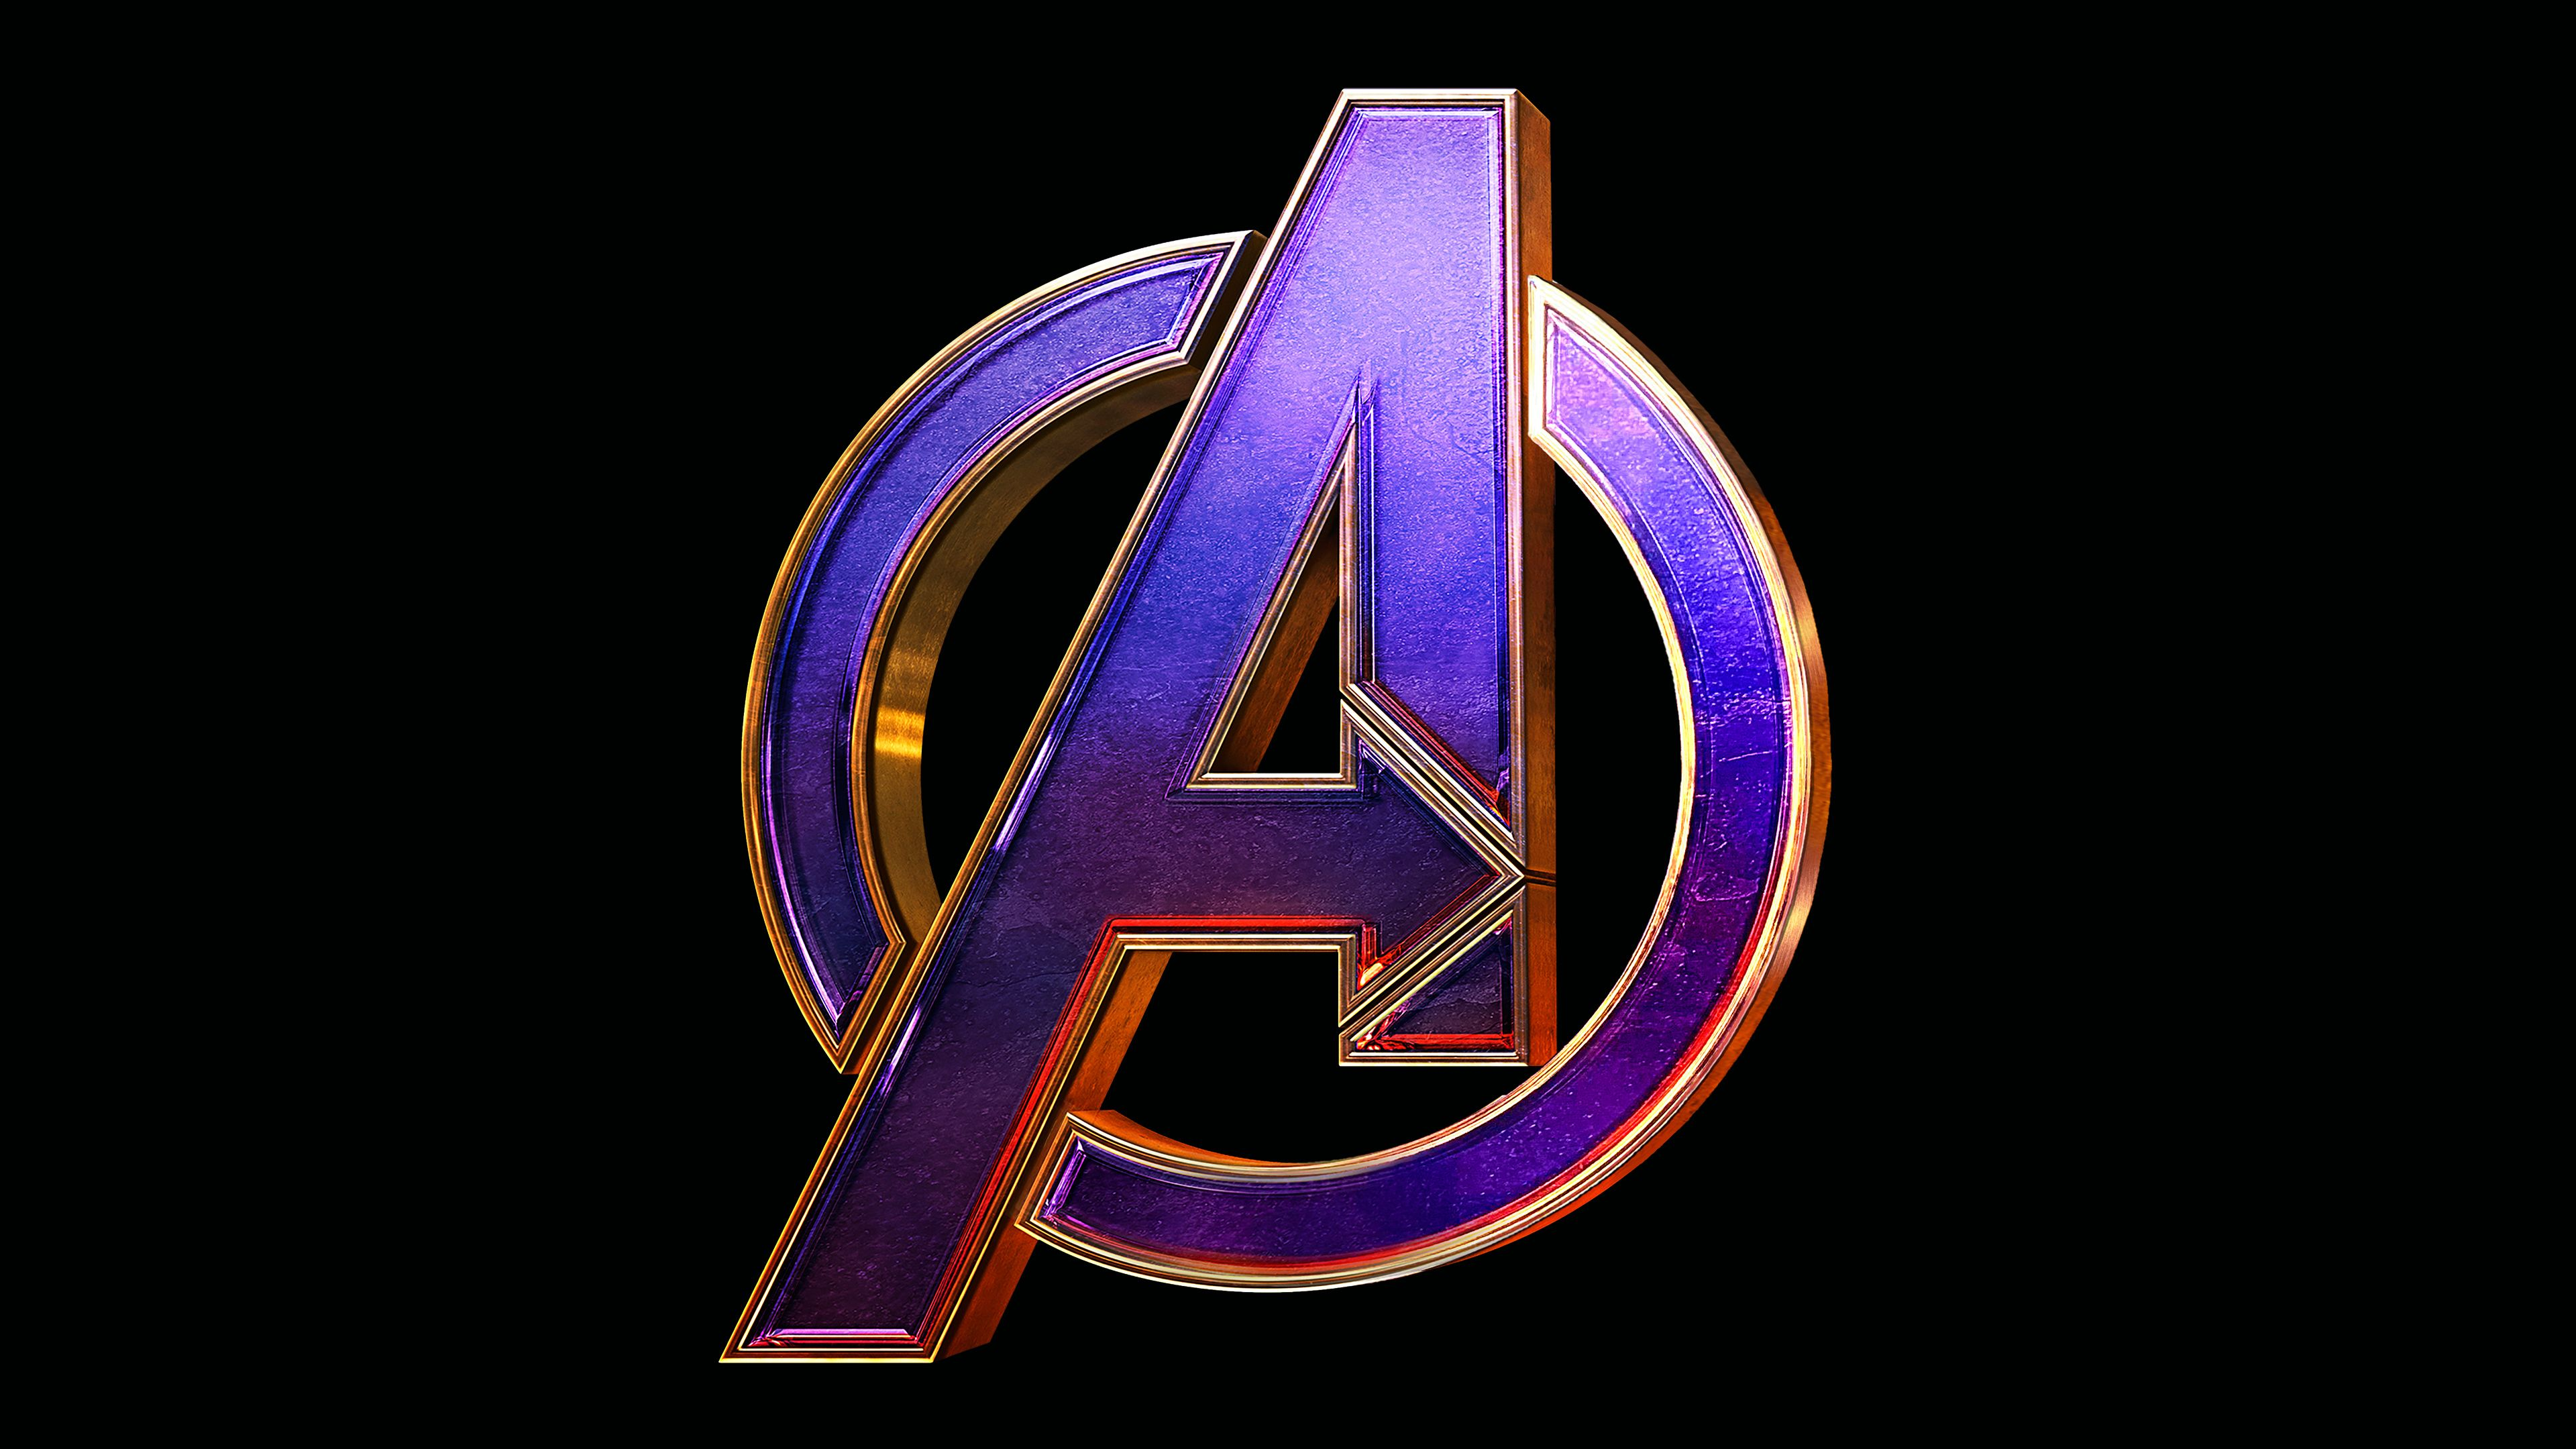 Avengers Endgame Logo 4k movies wallpapers, logo